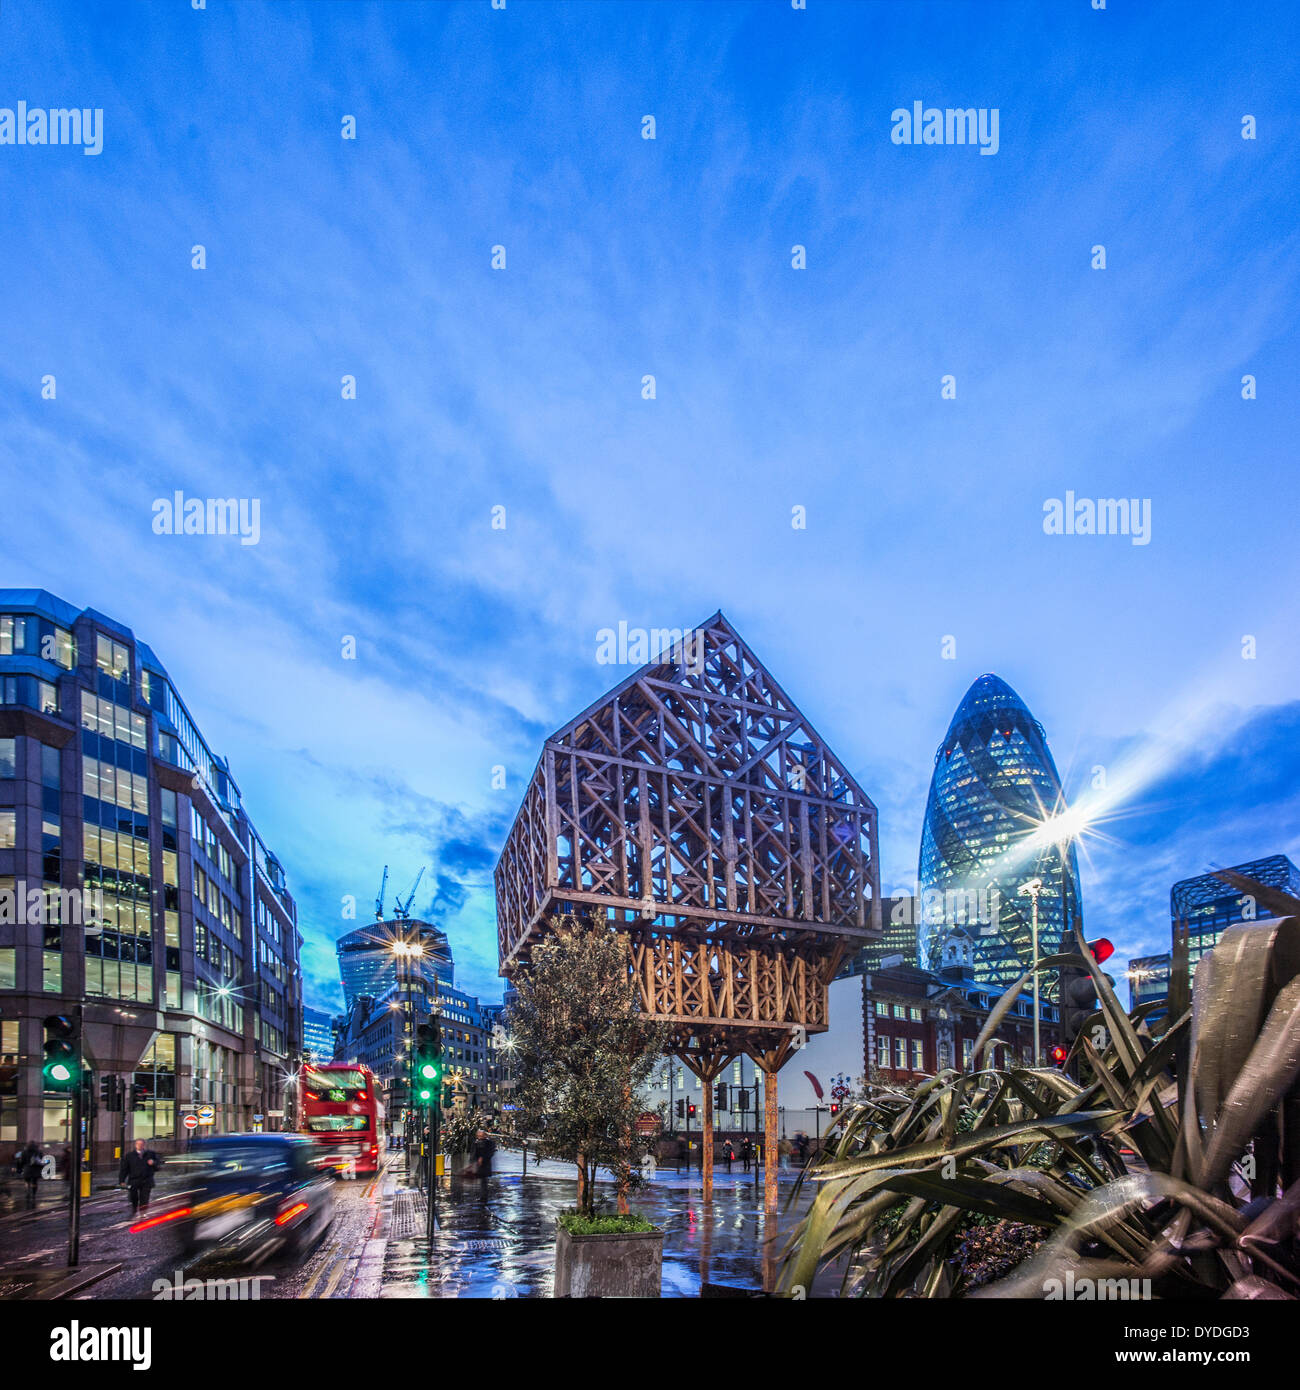 The location of the historic Aldgate where Chaucer lived from 1374-1386. - Stock Image